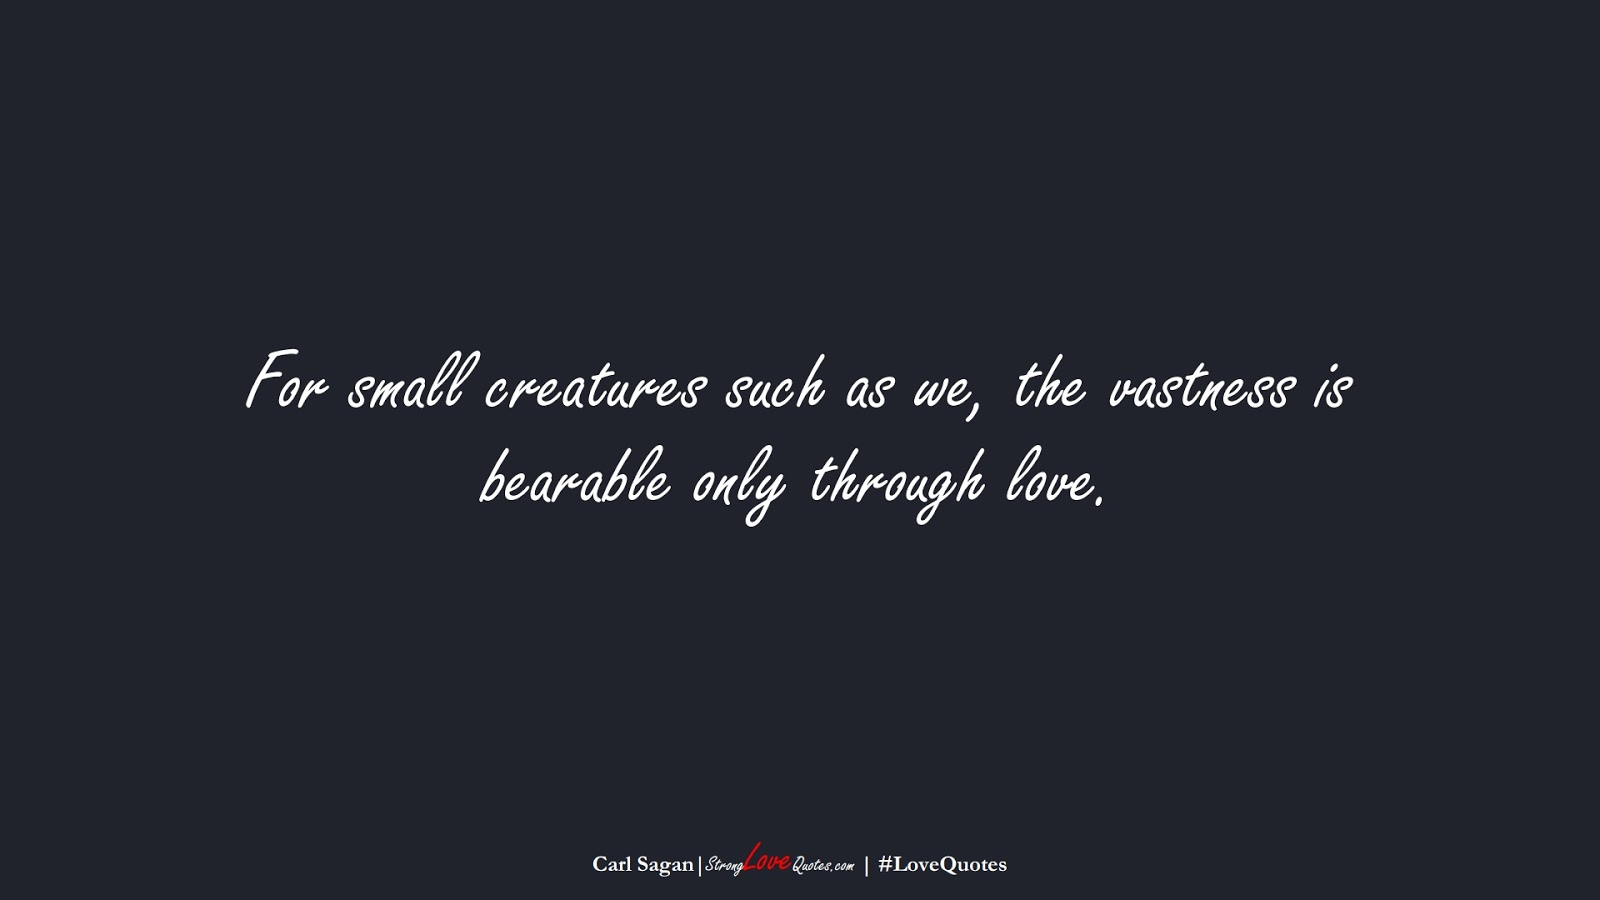 For small creatures such as we, the vastness is bearable only through love. (Carl Sagan);  #LoveQuotes